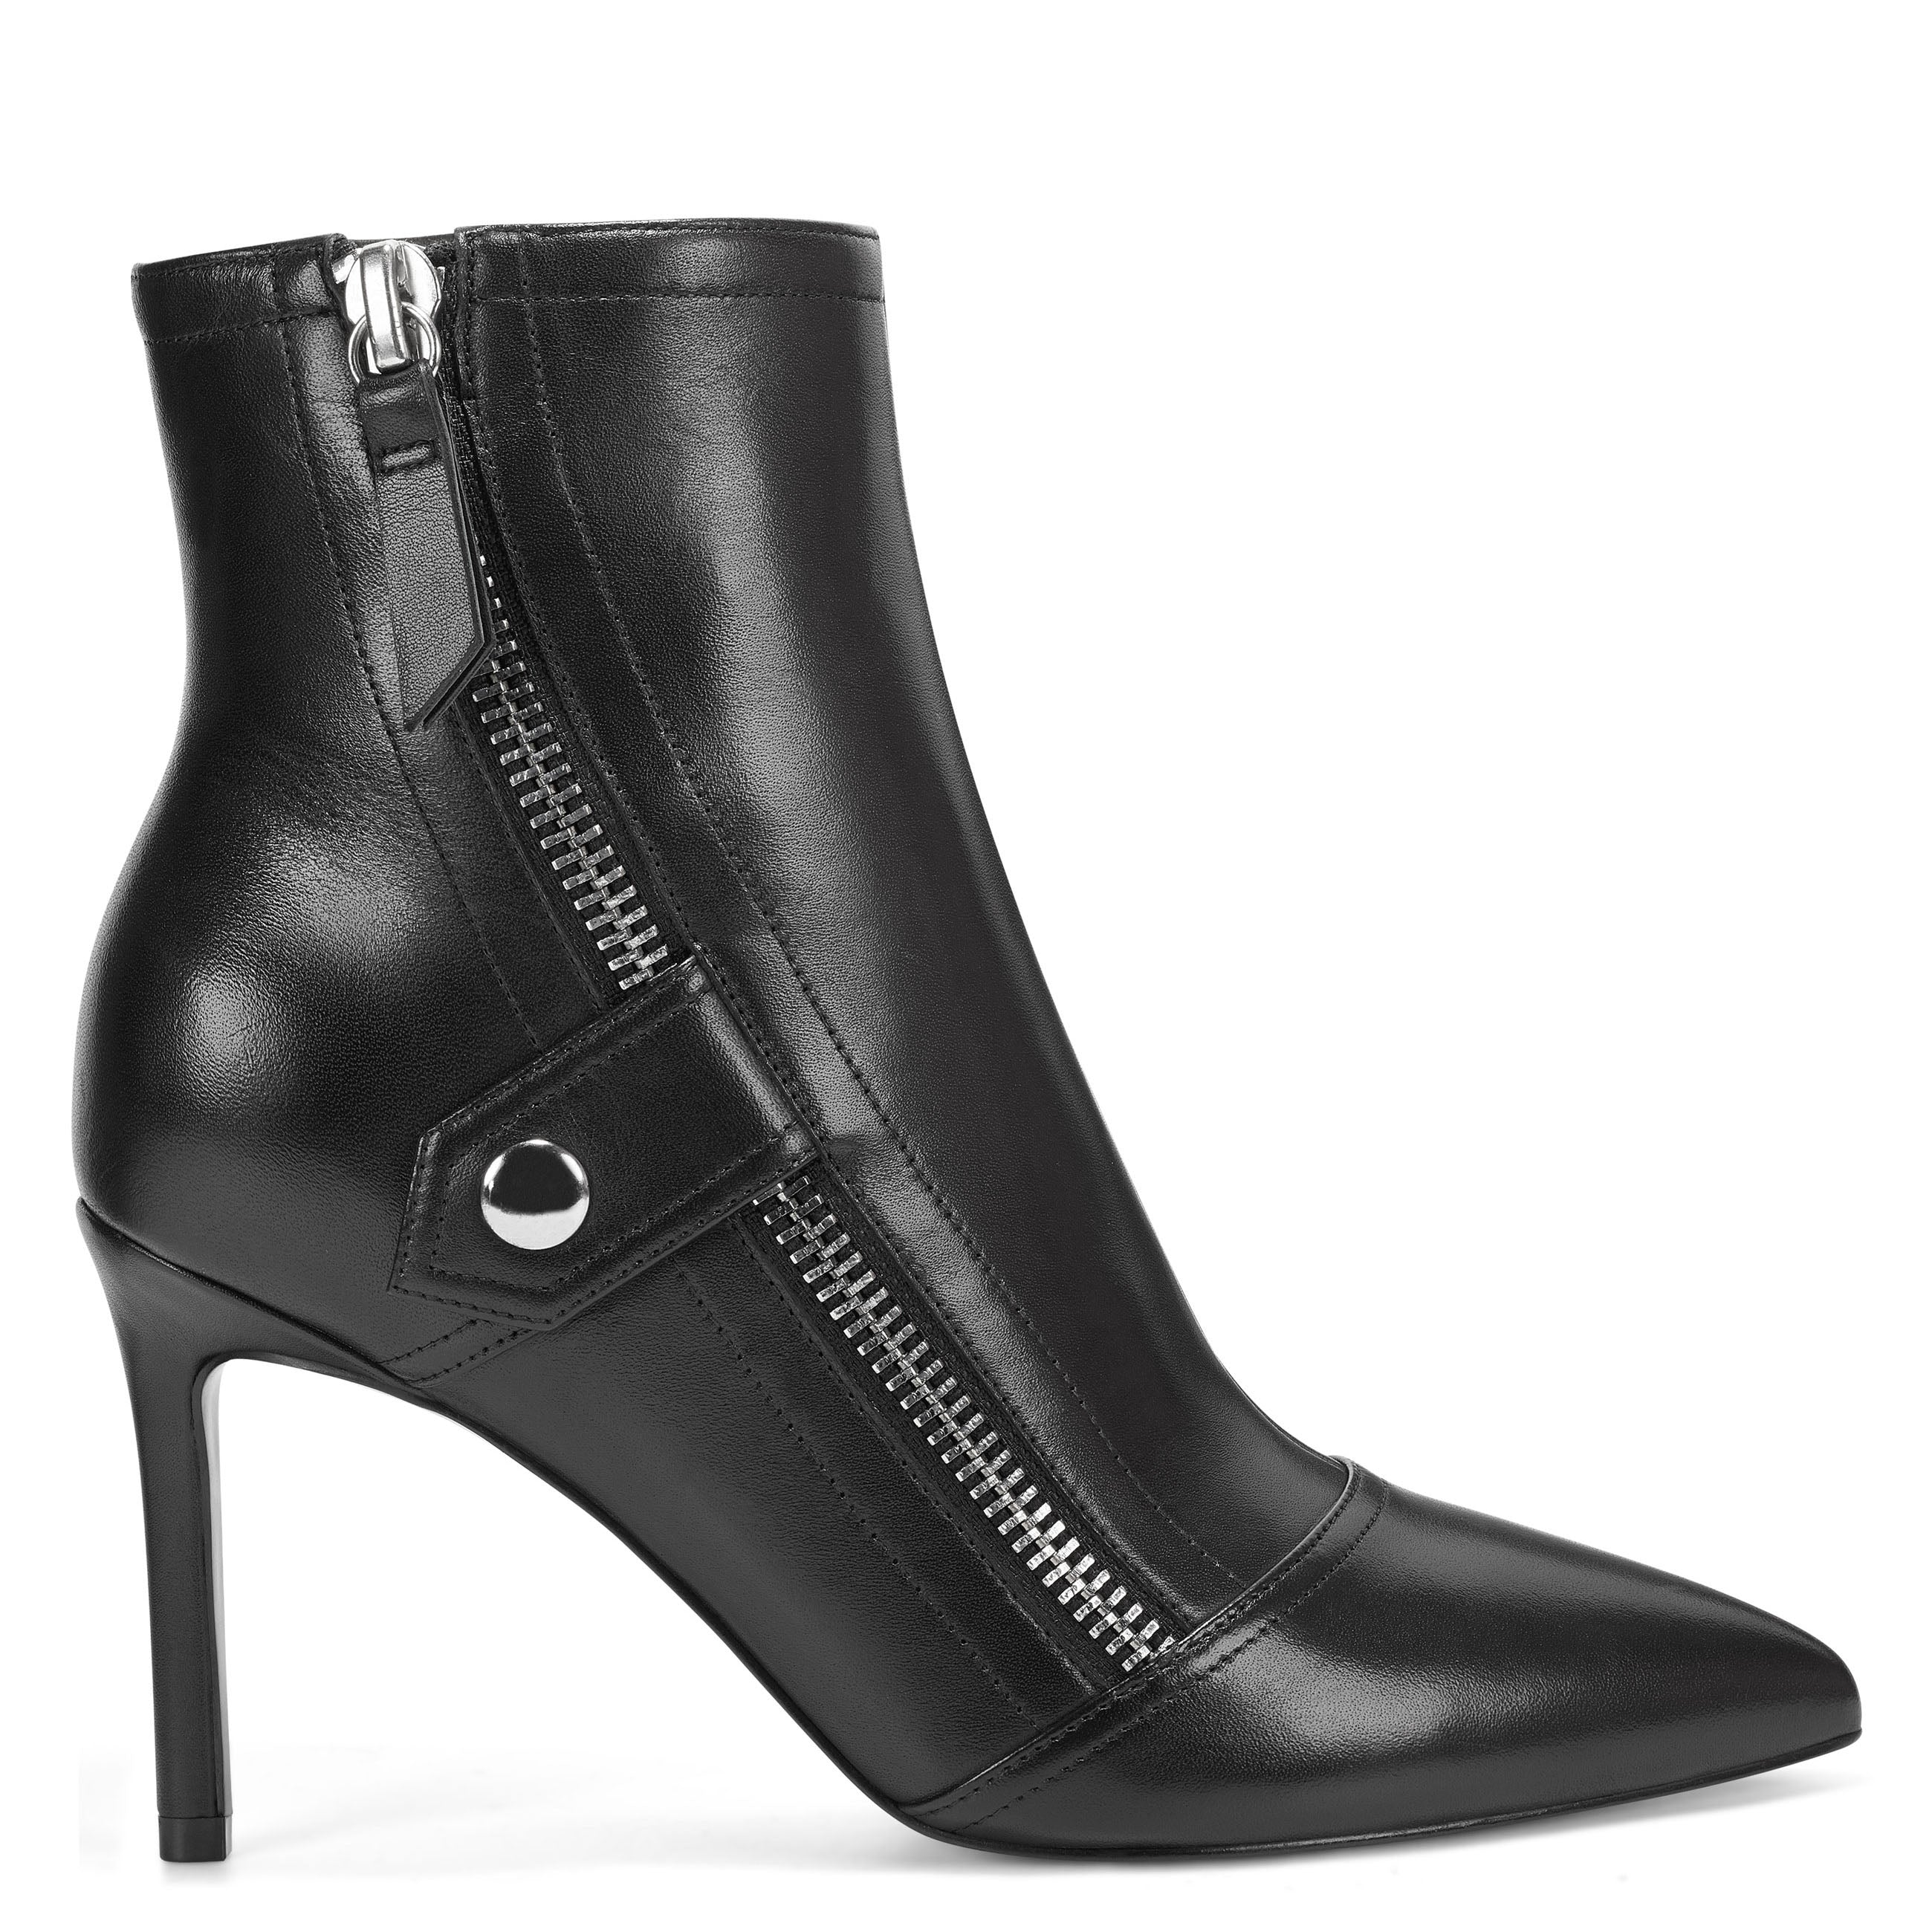 NINEWEST Emette Heel Booties